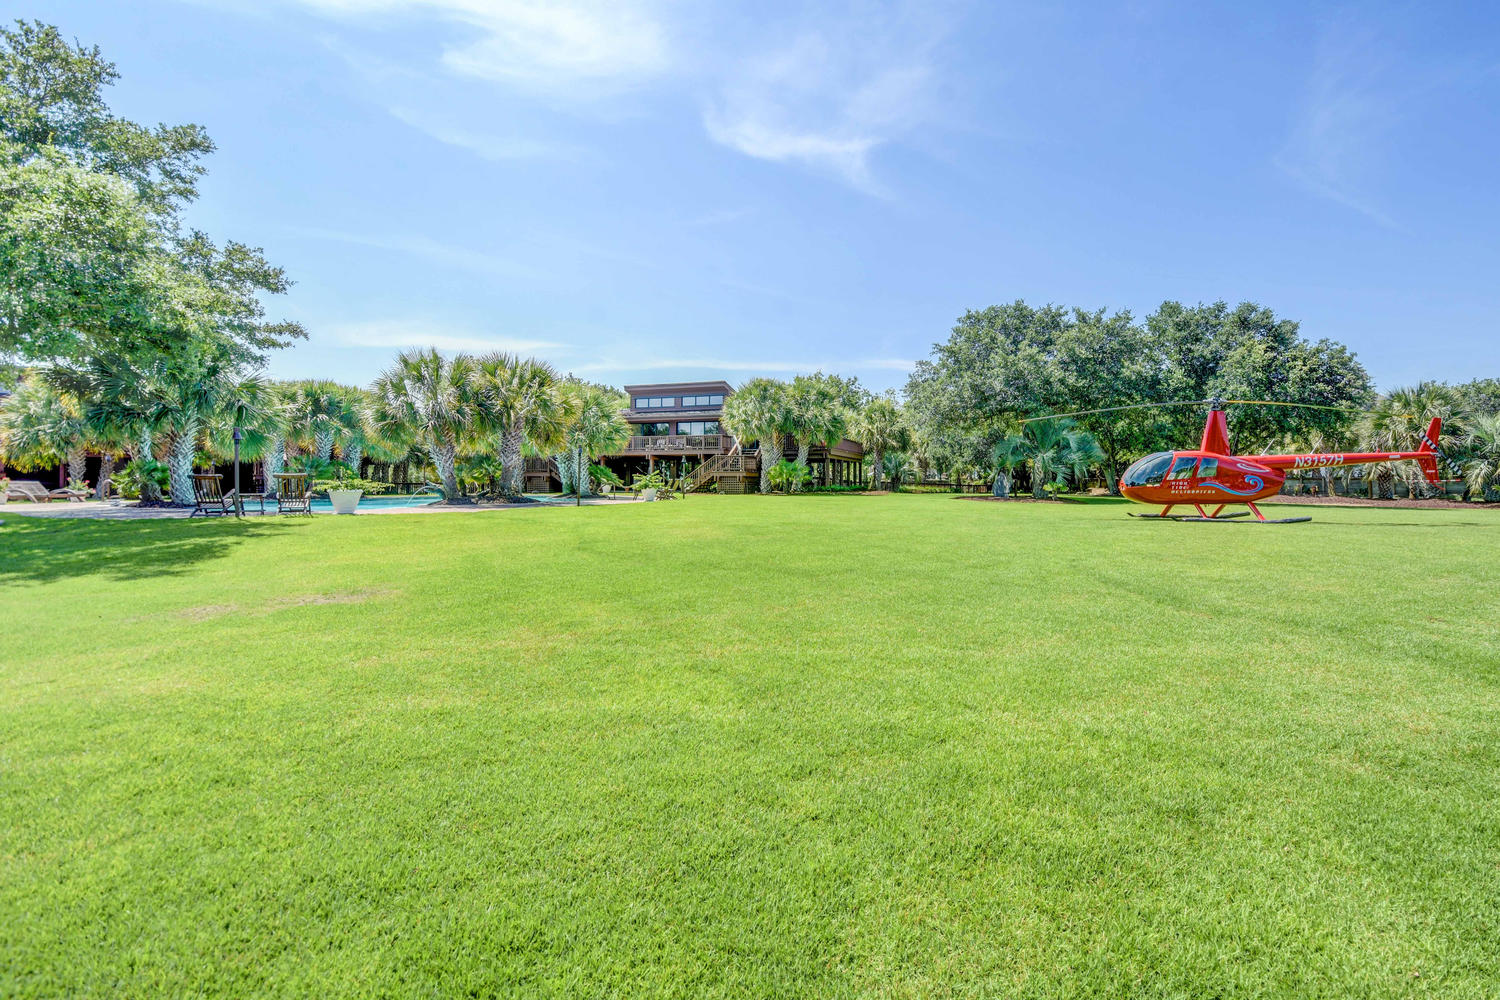 7422 Sea Lilly Ln Wilmington-large-004-159-Helicopter accessible-1500x1000-72dpi.jpg